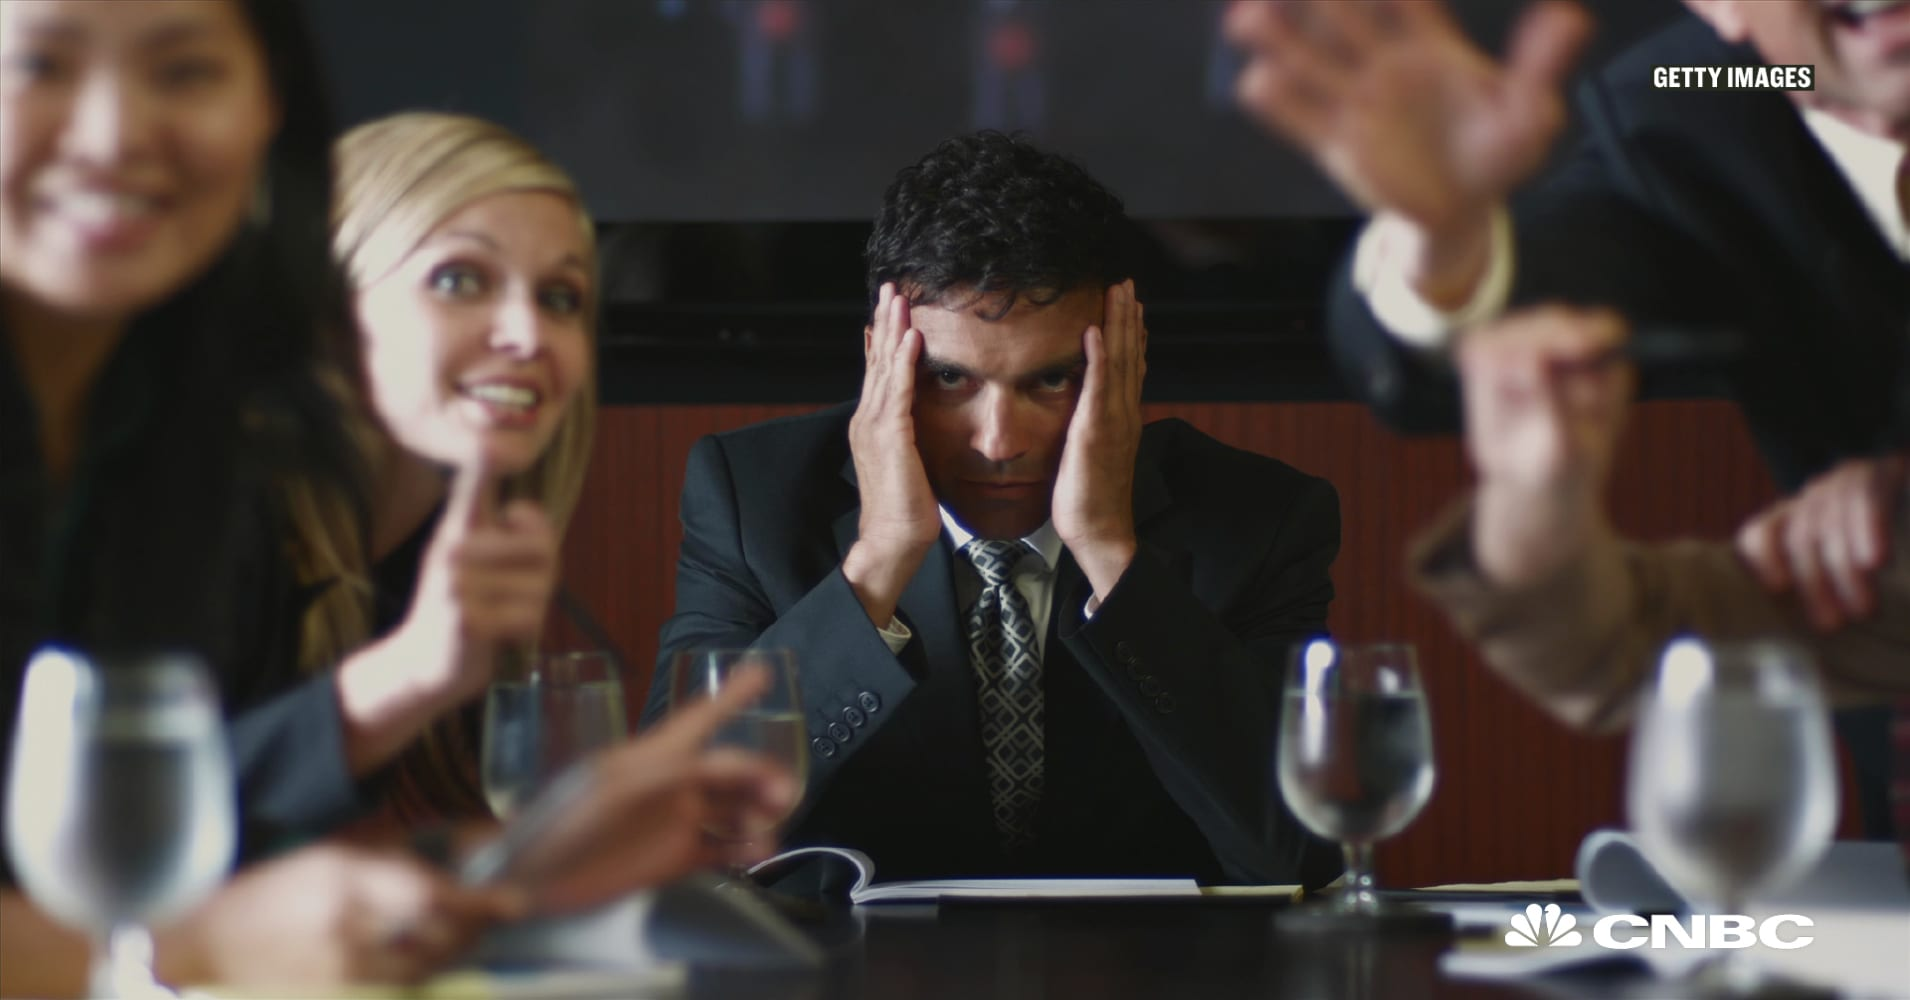 3 signs your boss is so mean you should actually quit